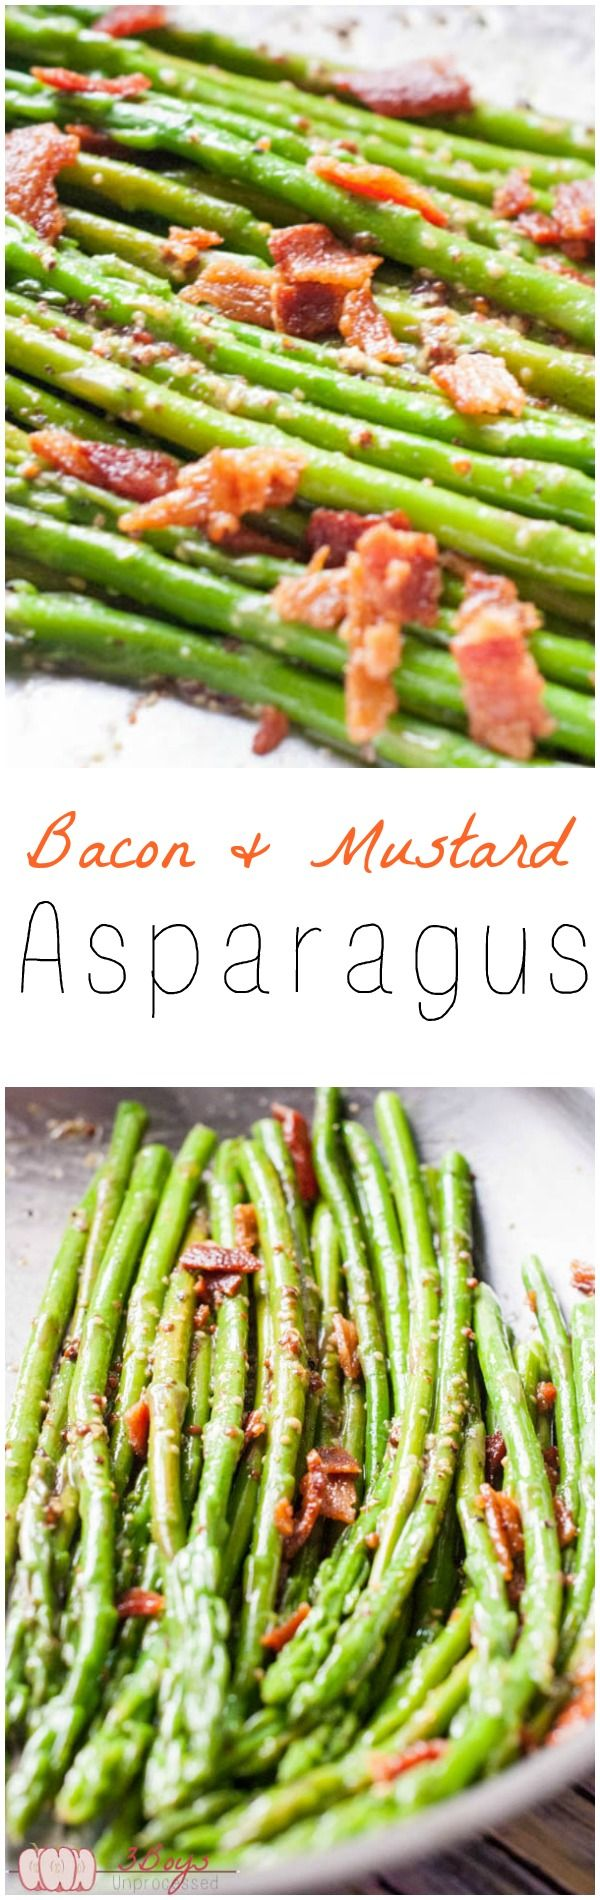 Asparagus And Double Smoked Bacon Popover Recipes — Dishmaps